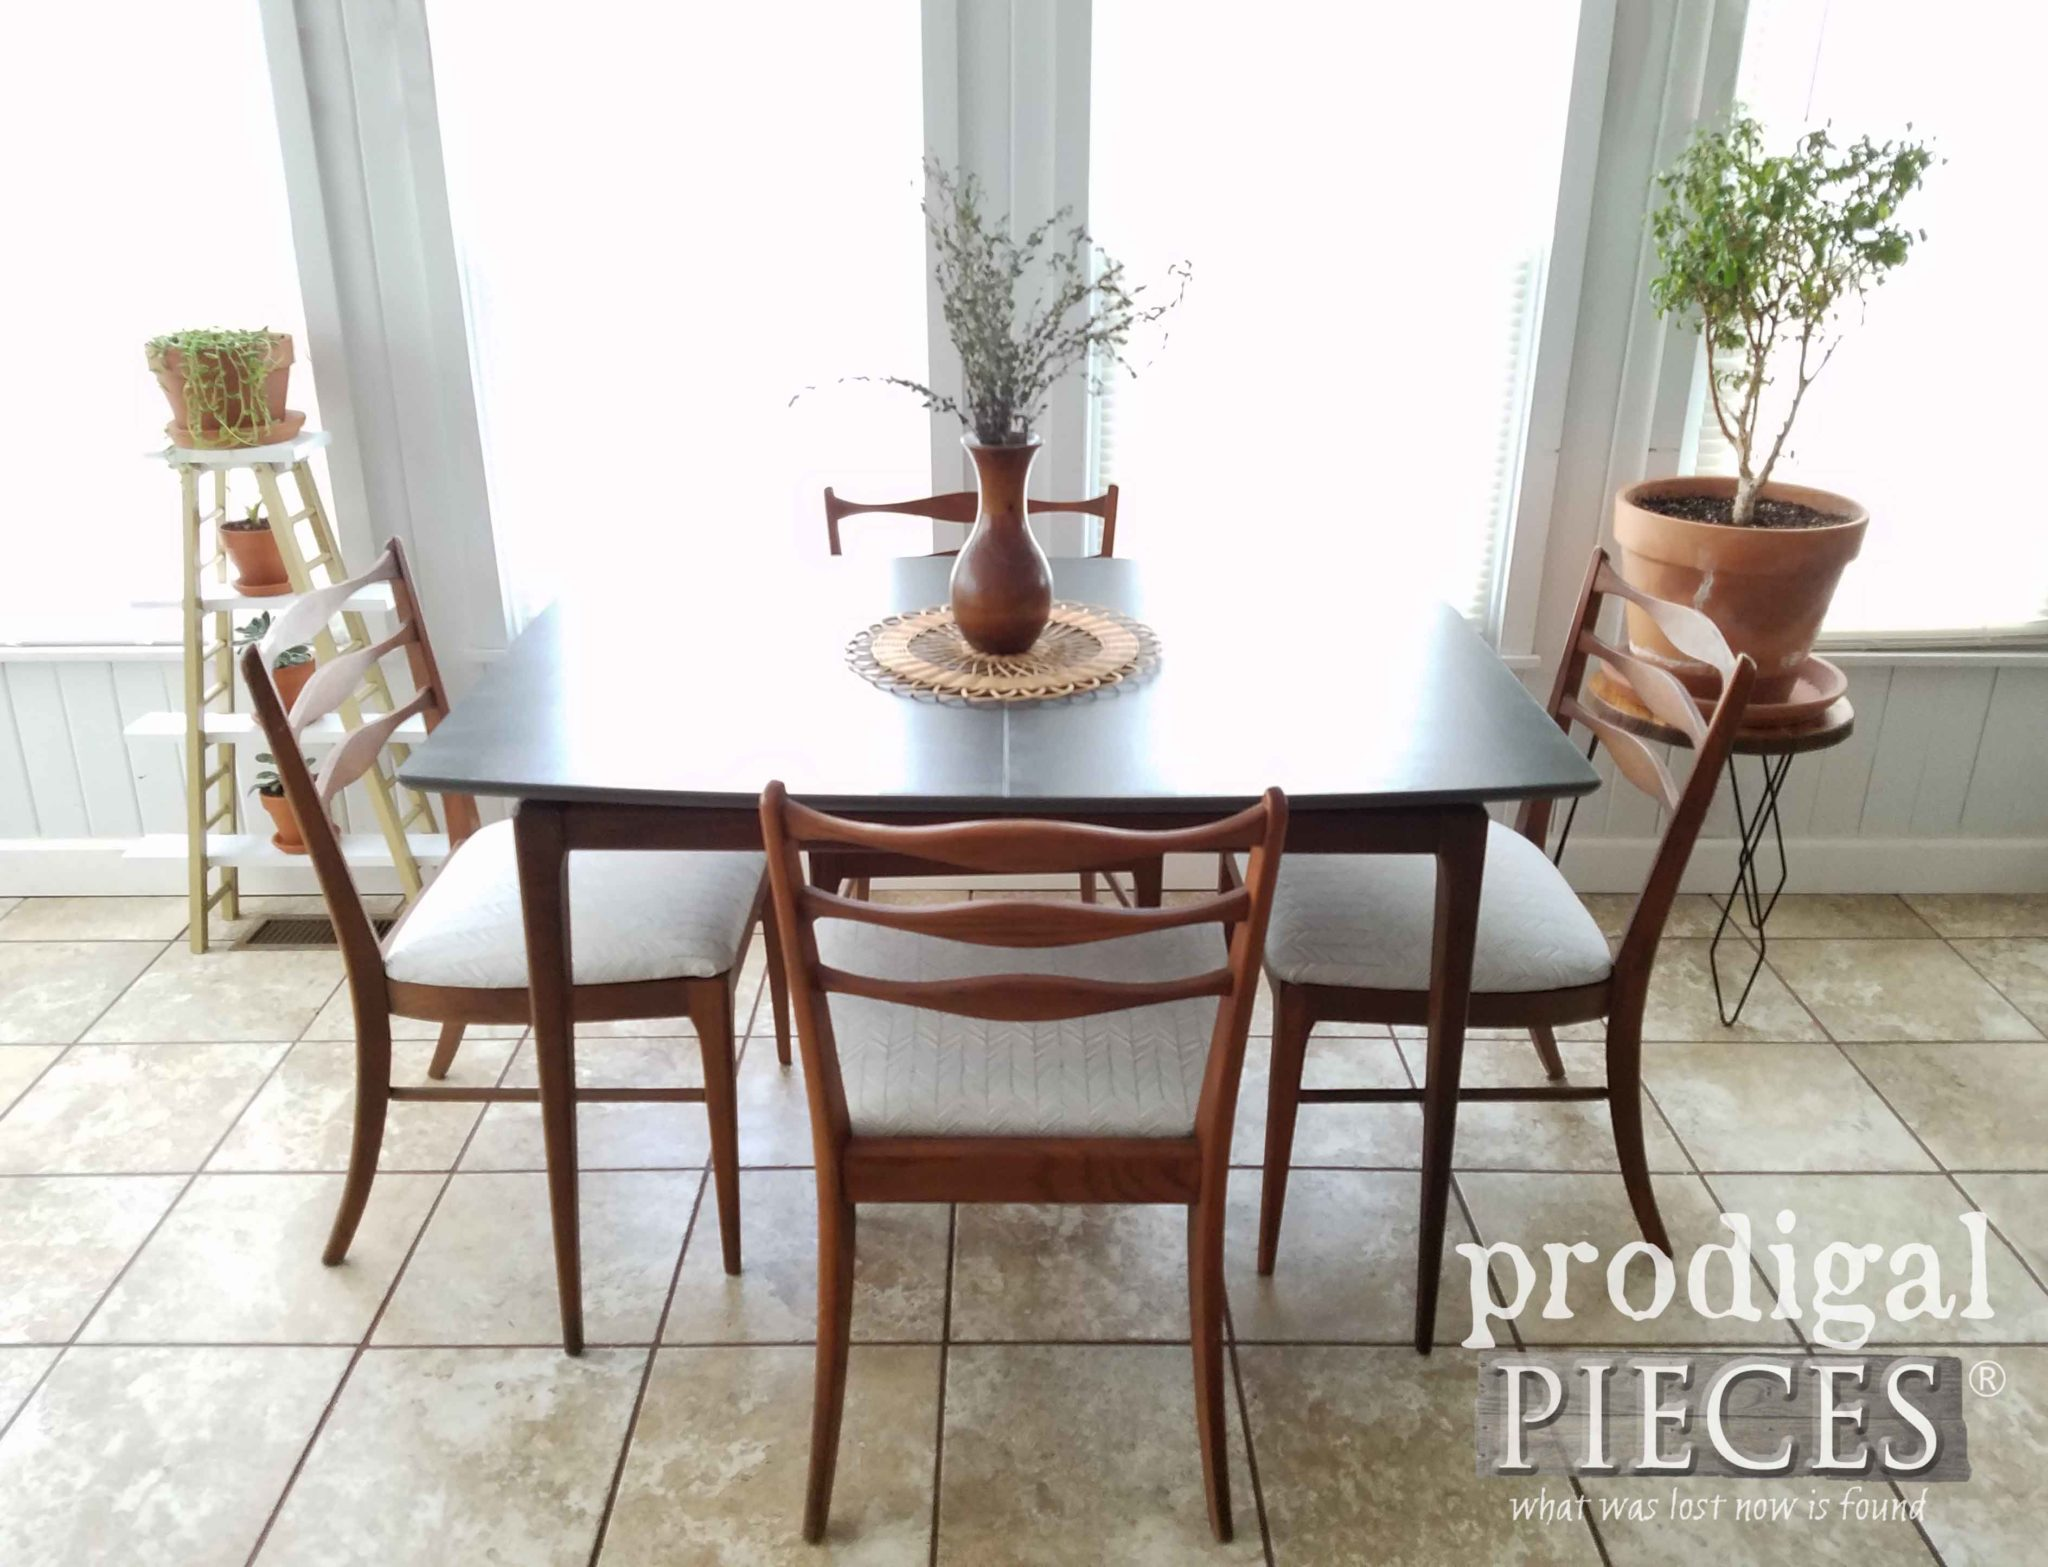 Mid Century Modern Dinnette Set with Four Upholstered Chairs by Larissa of Prodigal Pieces | prodigalpieces.com